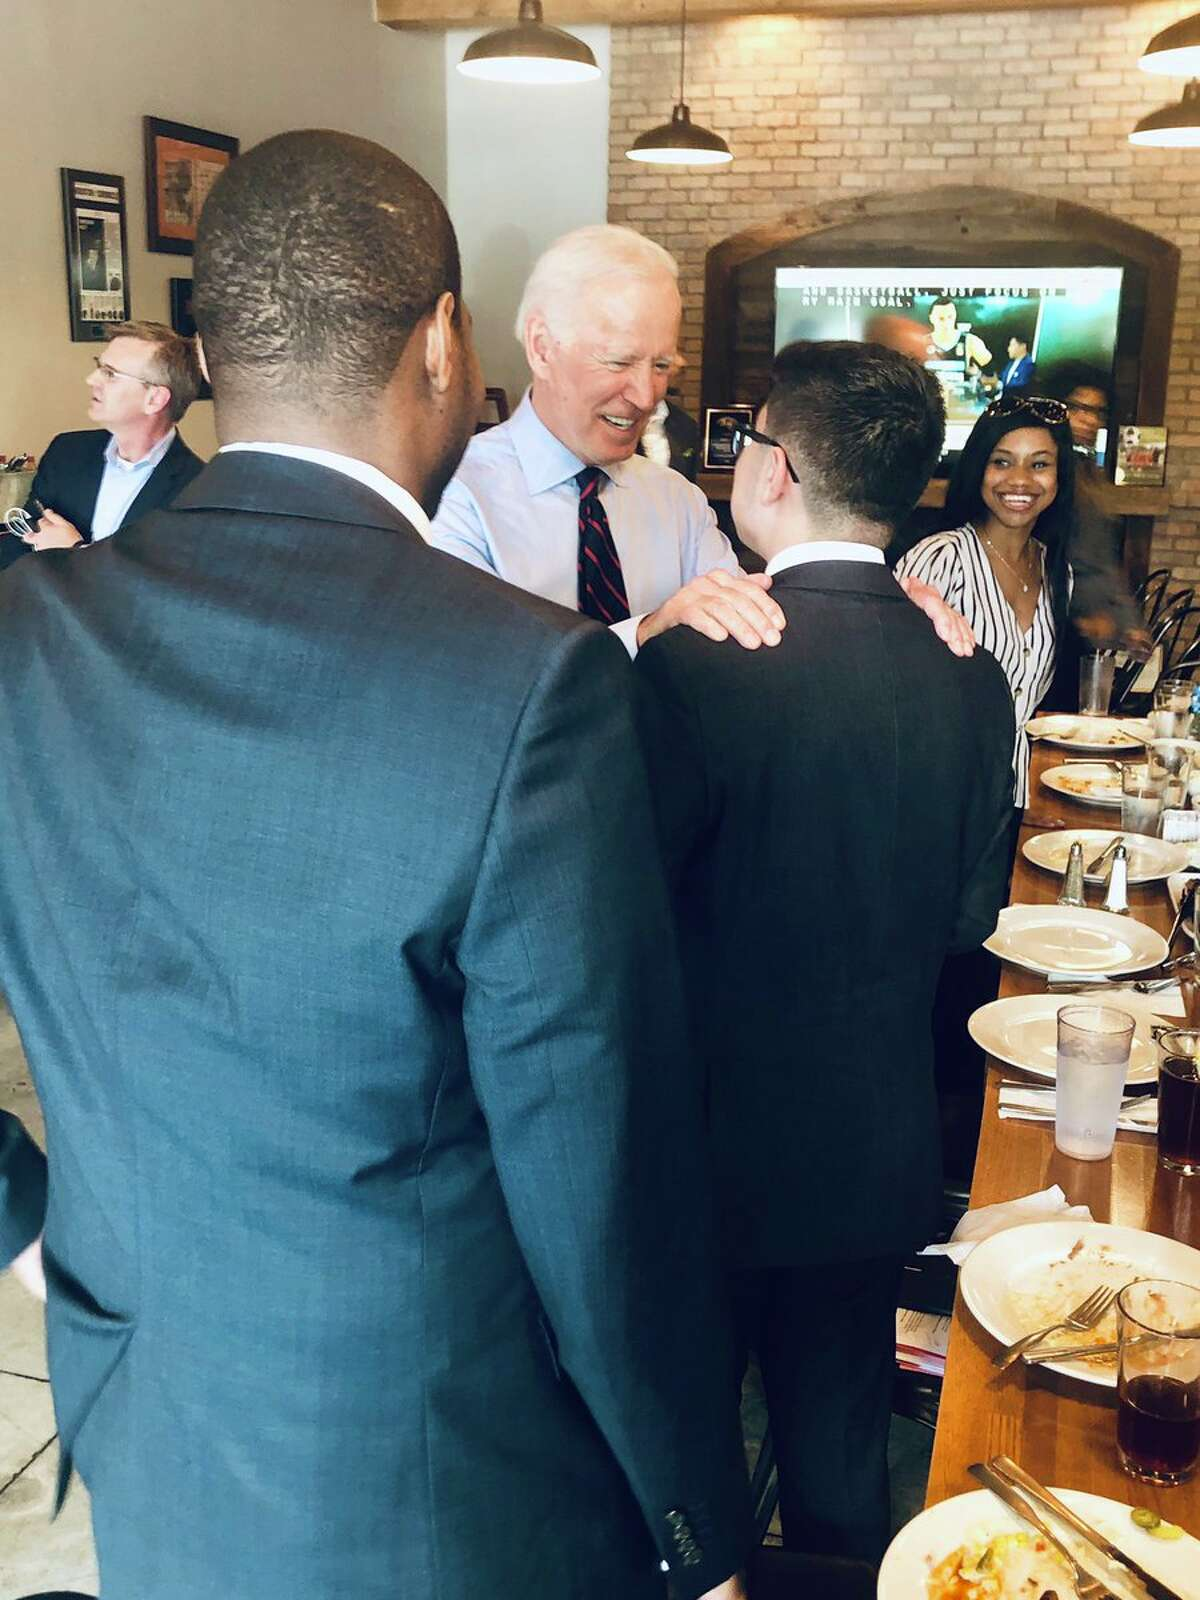 @HoustonISD Former Vice President @JoeBiden and @DrBiden spoke with #HISD students about the impact of their teachers in their every day life, as well as @HISD_NHECHS partnership with @HCCDistrict! #HISDEmpowers